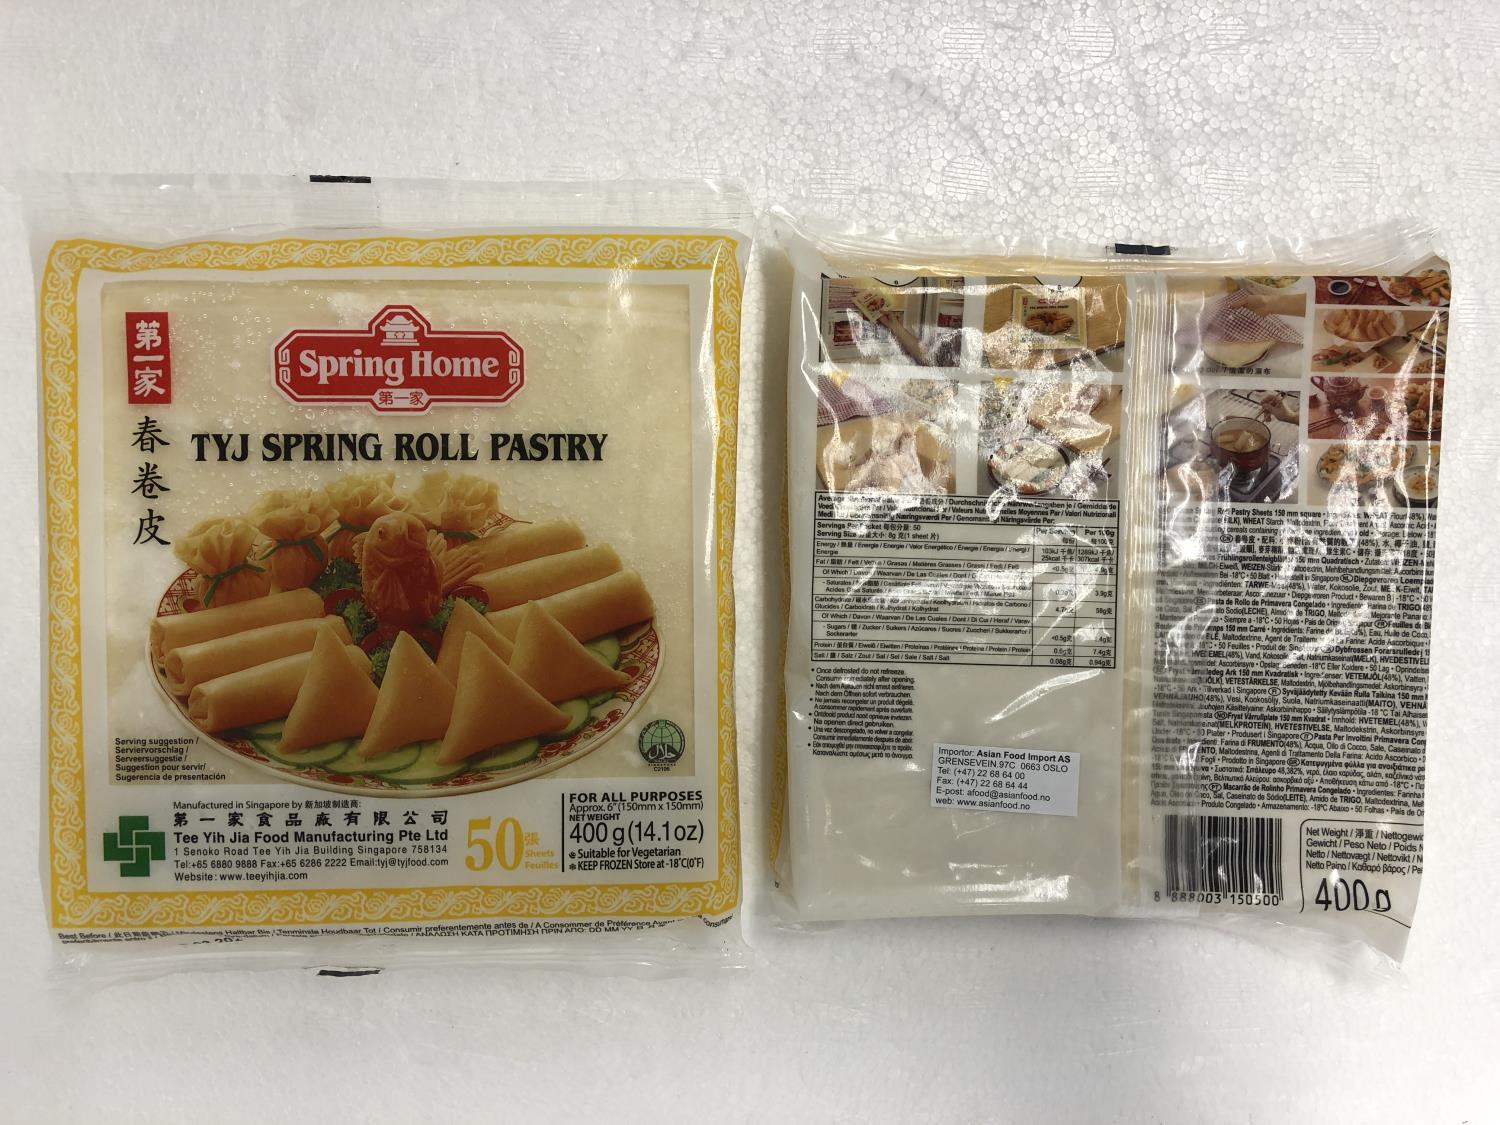 SPRING HOME Spring Roll Pastry 400g (150mm)